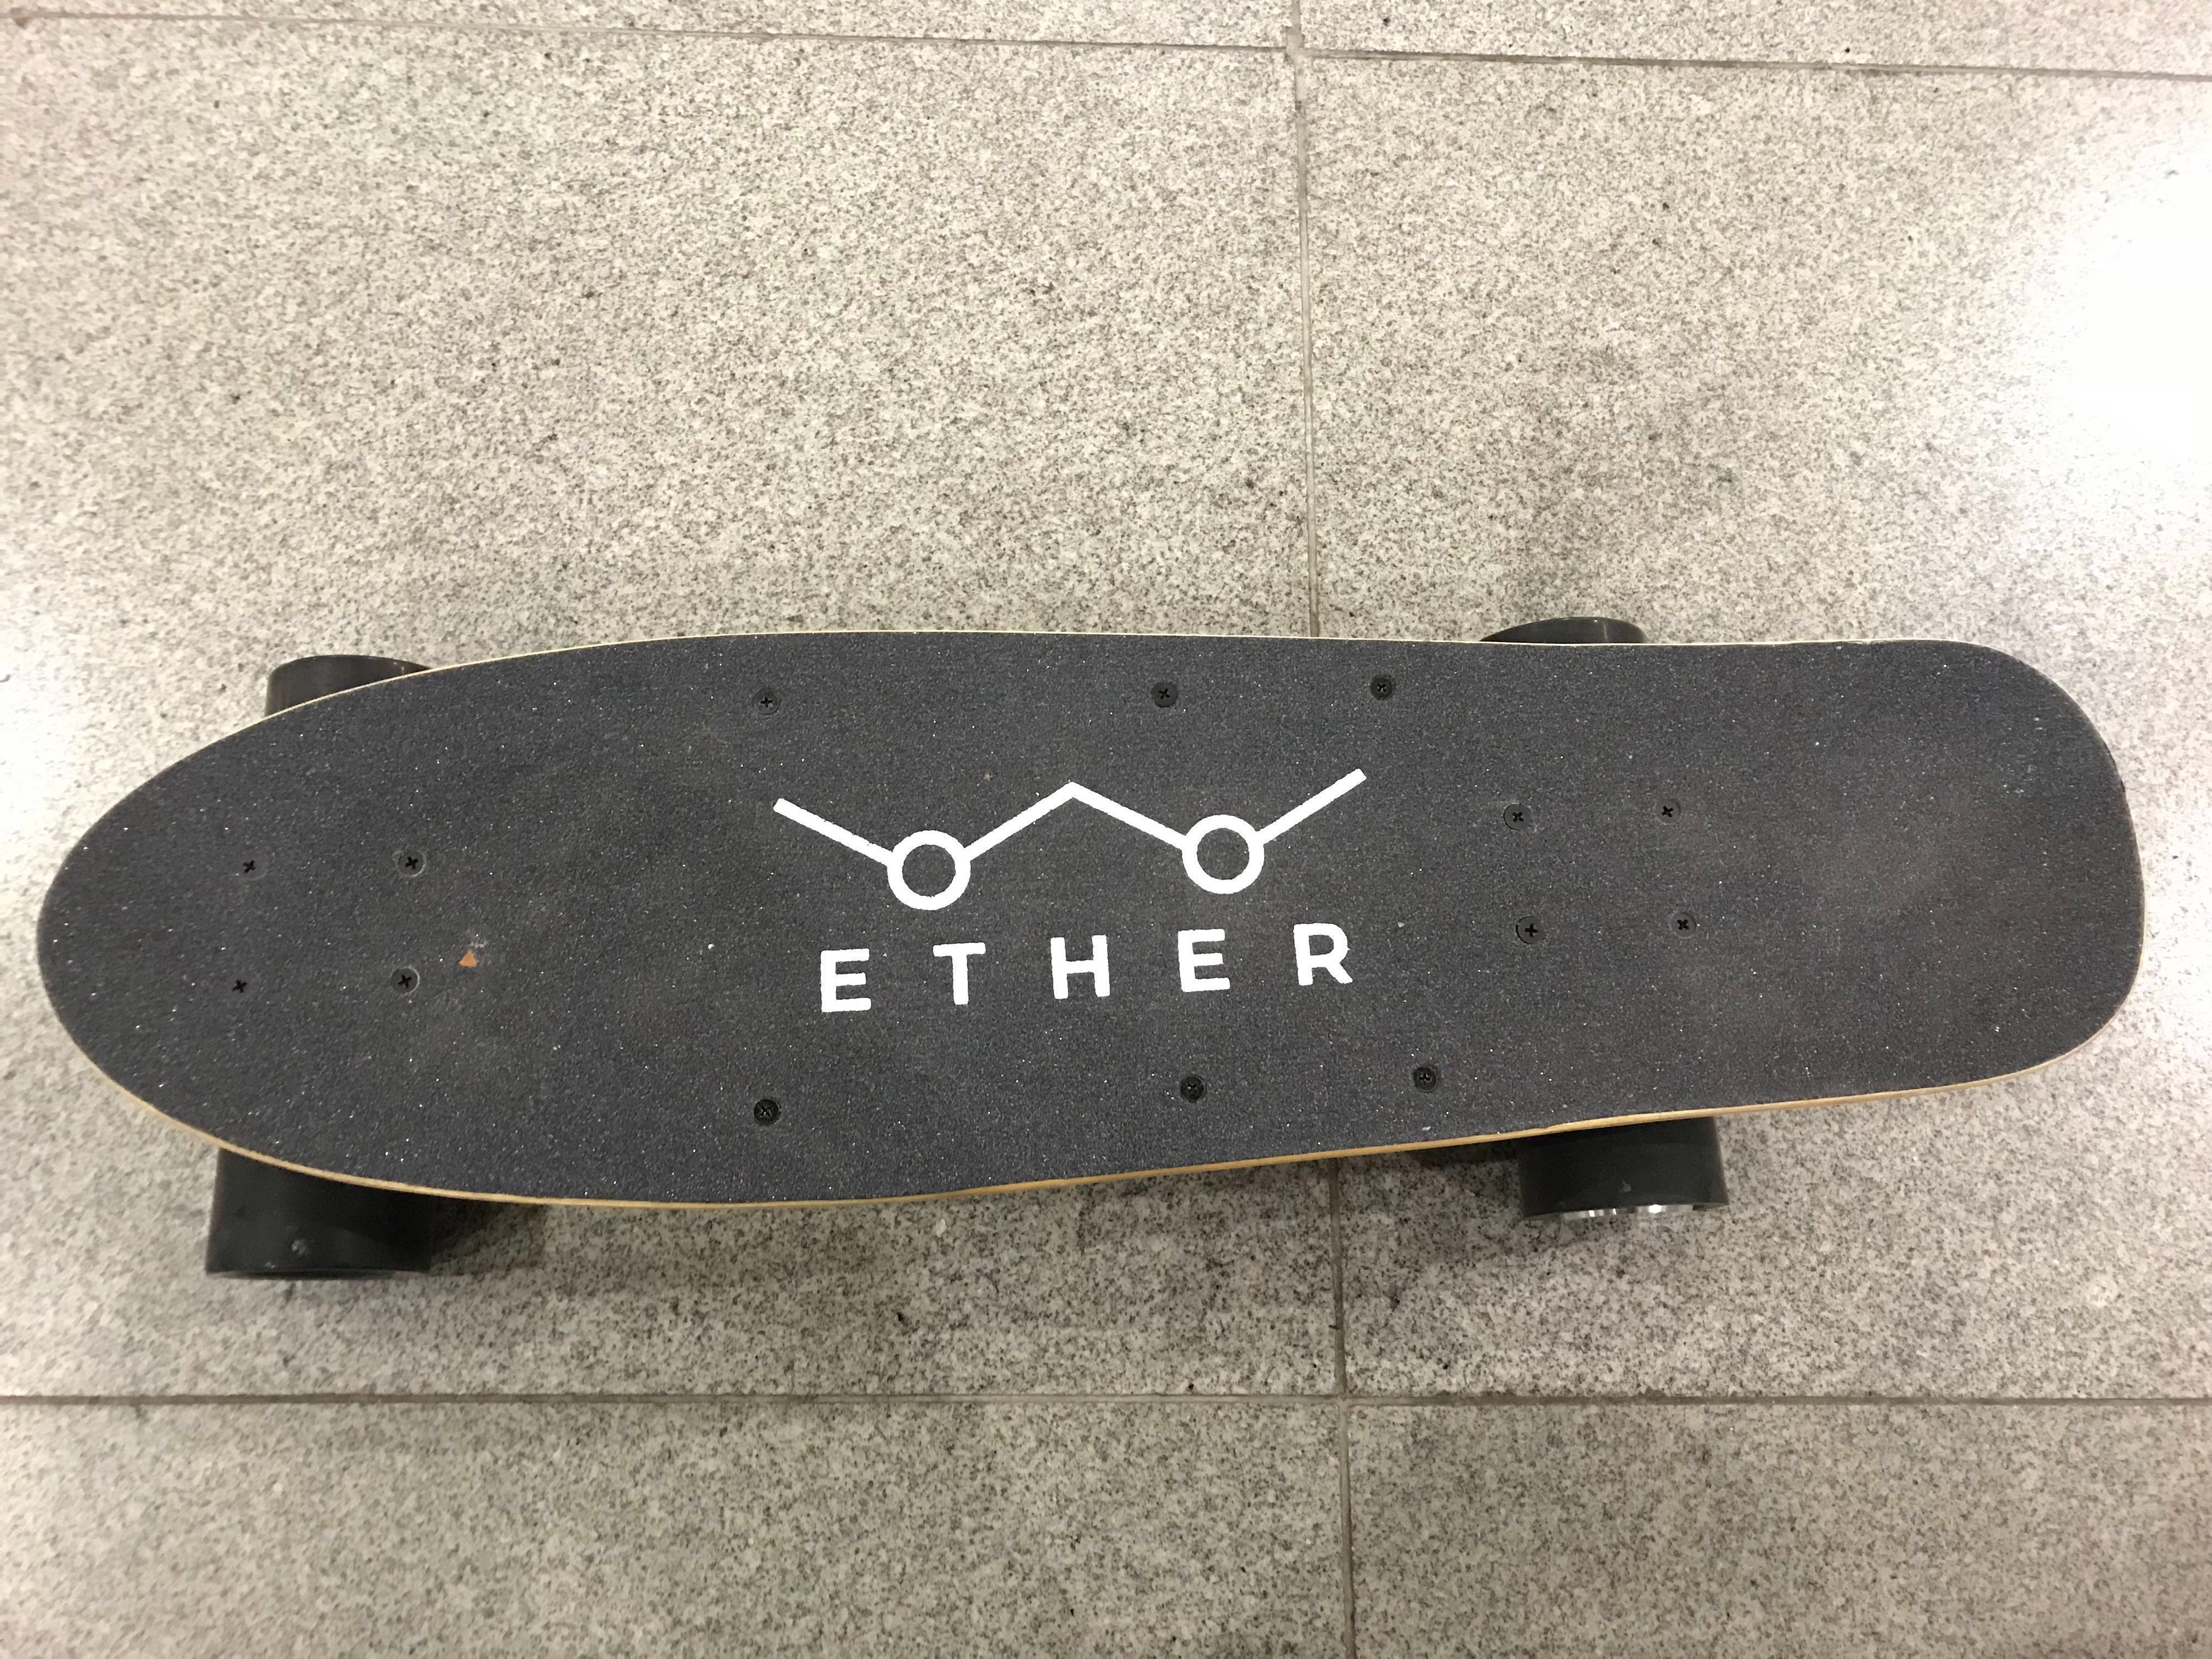 50_off_ether_electric_skateboard_version_2_1526625979_f4ccd0a7.jpg